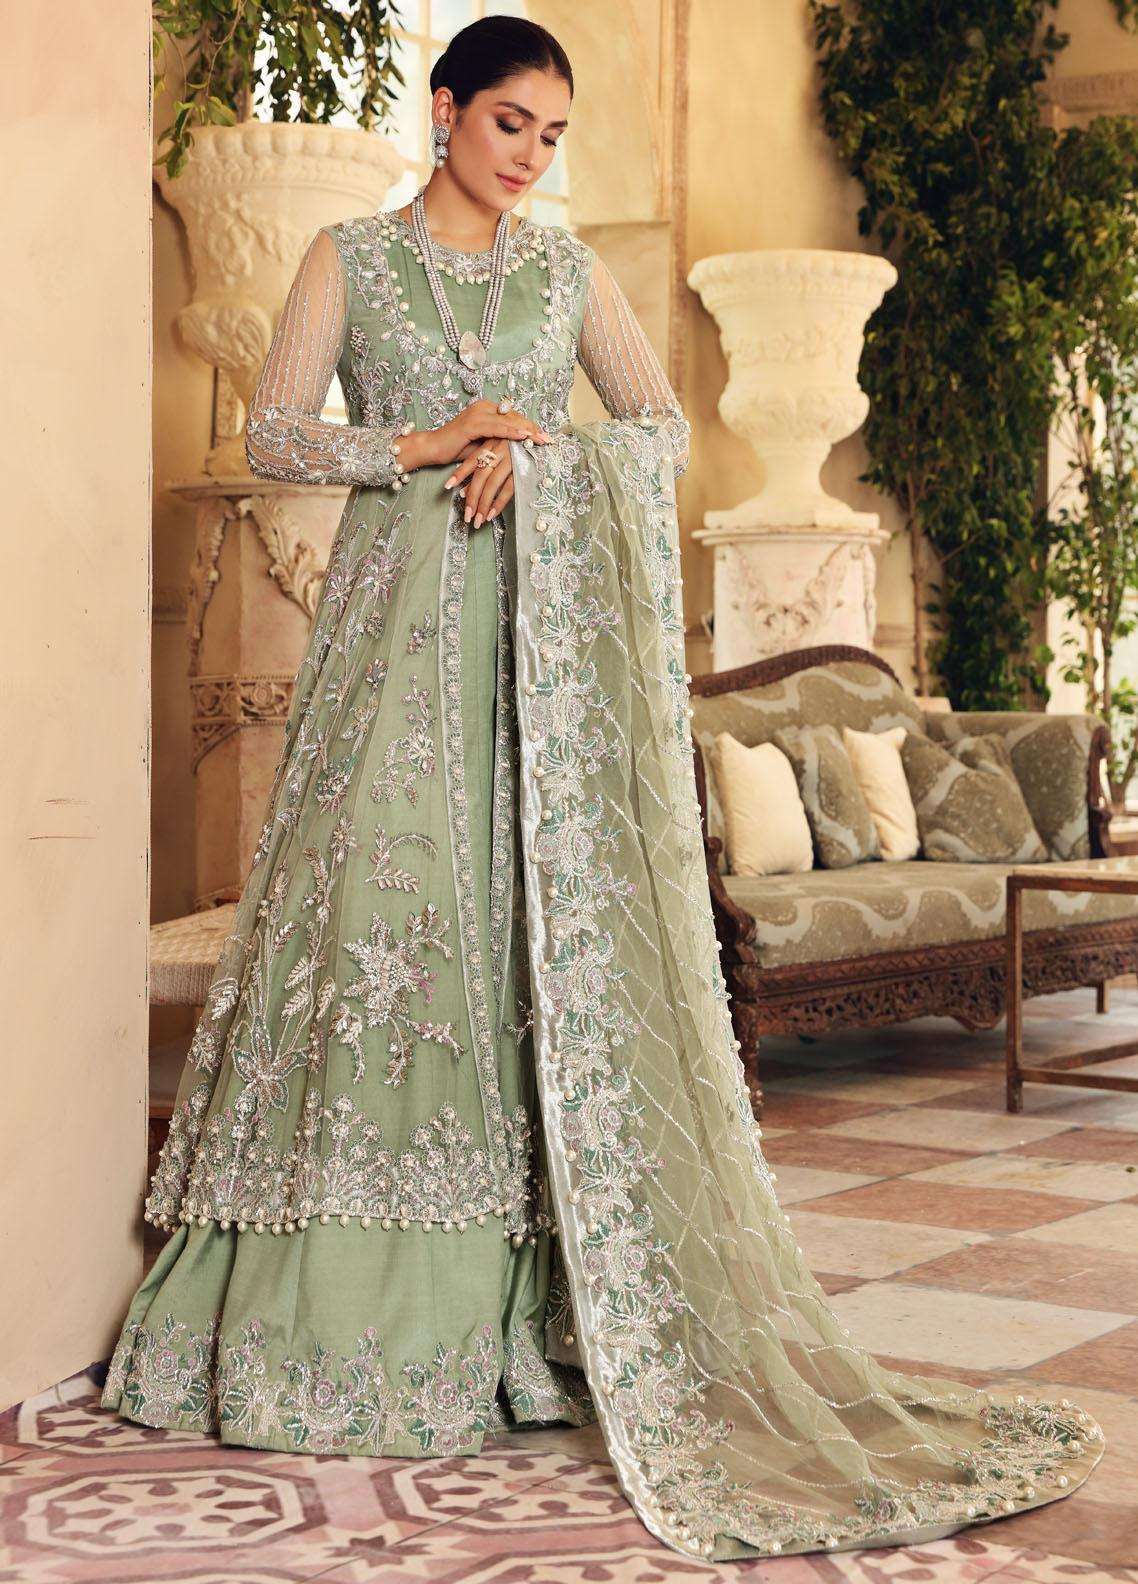 Elaf Embroidered Net Suit Unstitched 3 Piece Emerald 05 – Luxury Bridal Collection